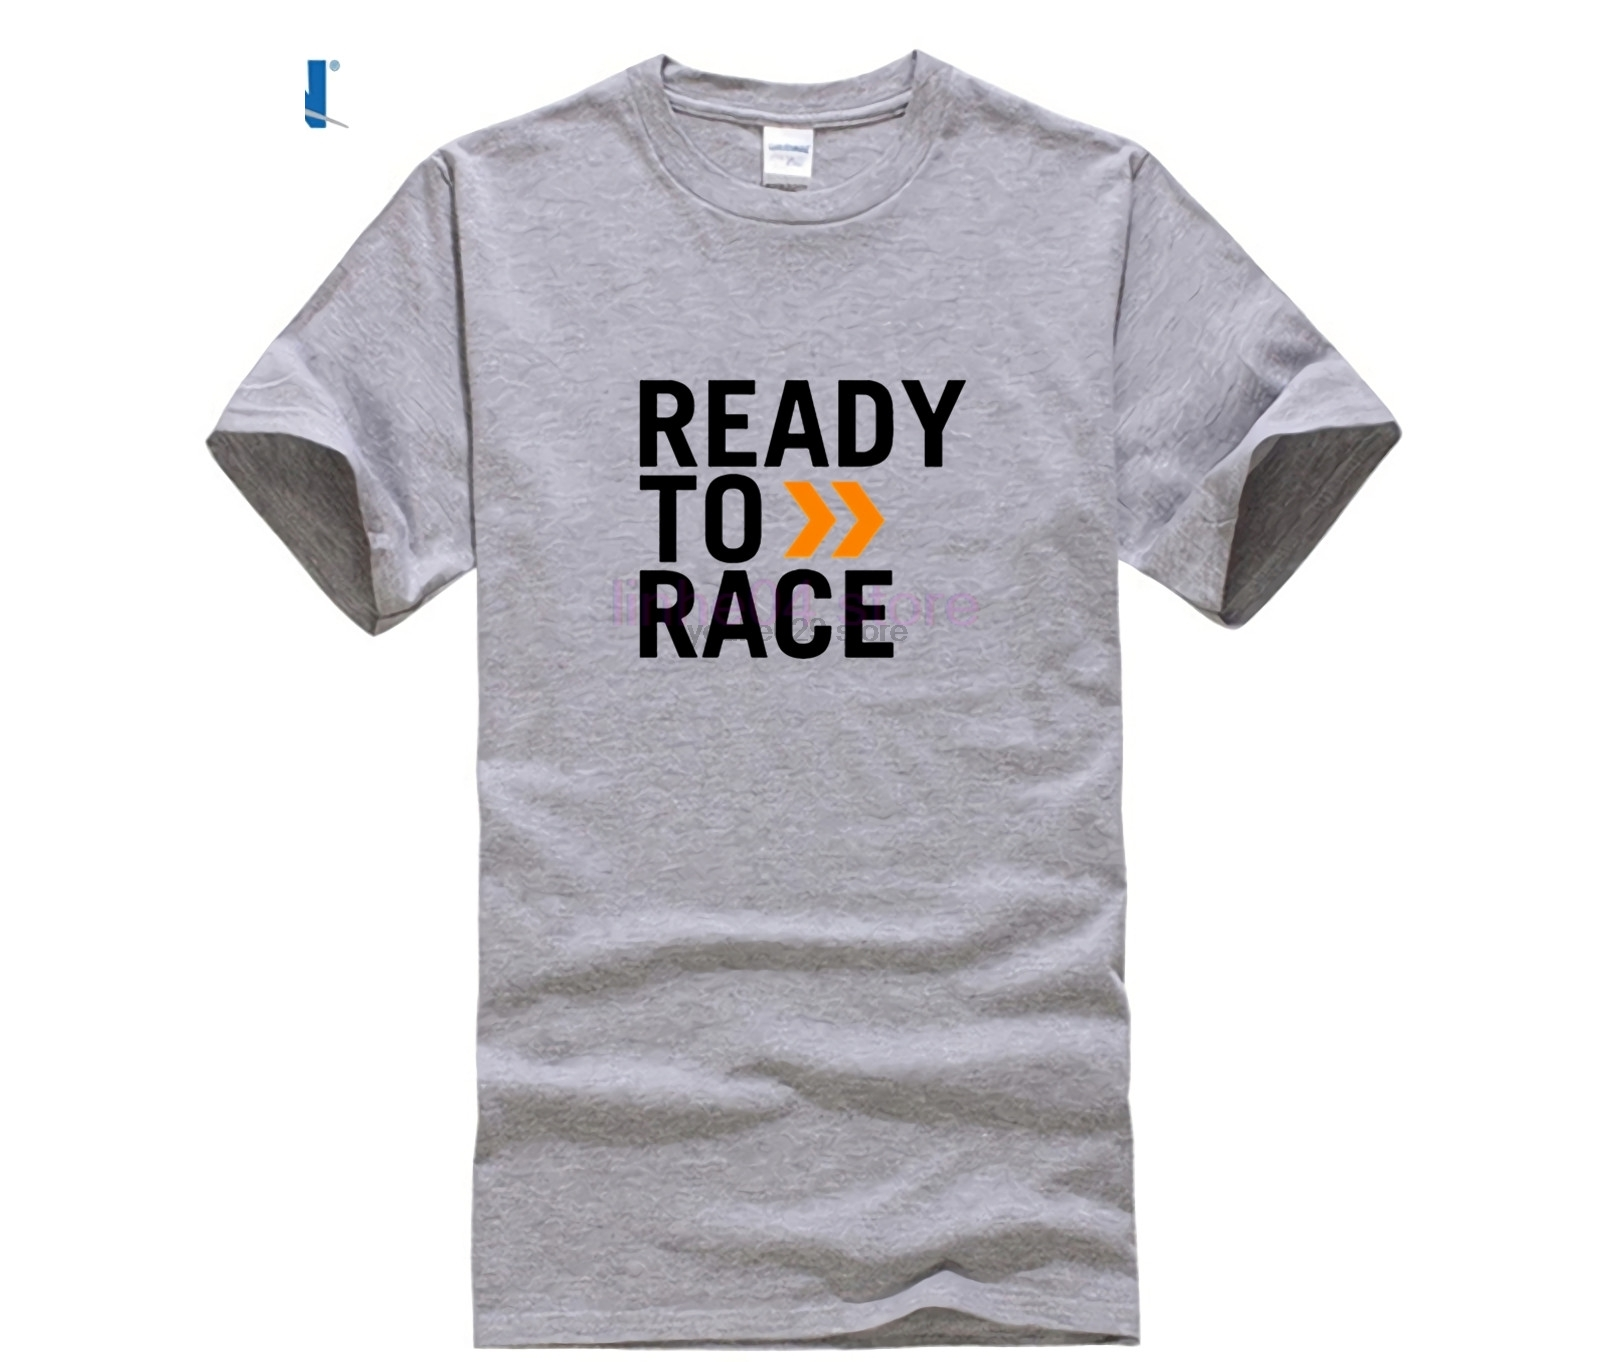 2019 design Mens T-Shirt Ready to Race tshirt Pure Cotton Clothing Punk tshirt Letter Art printed Tee Casual T Shirt Man Website image